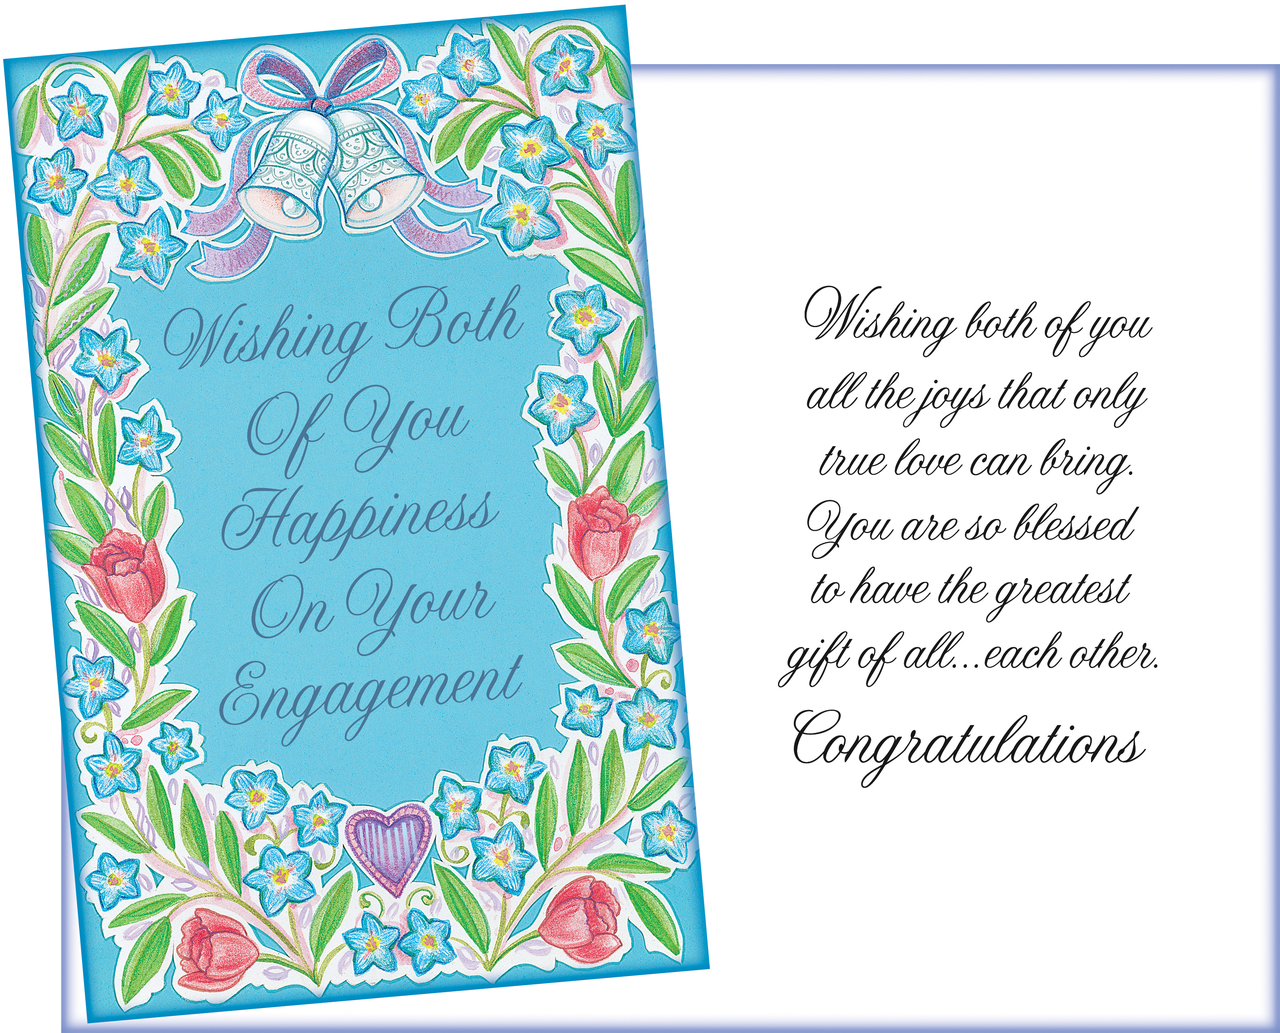 Card Engagement Congratulations Wishes